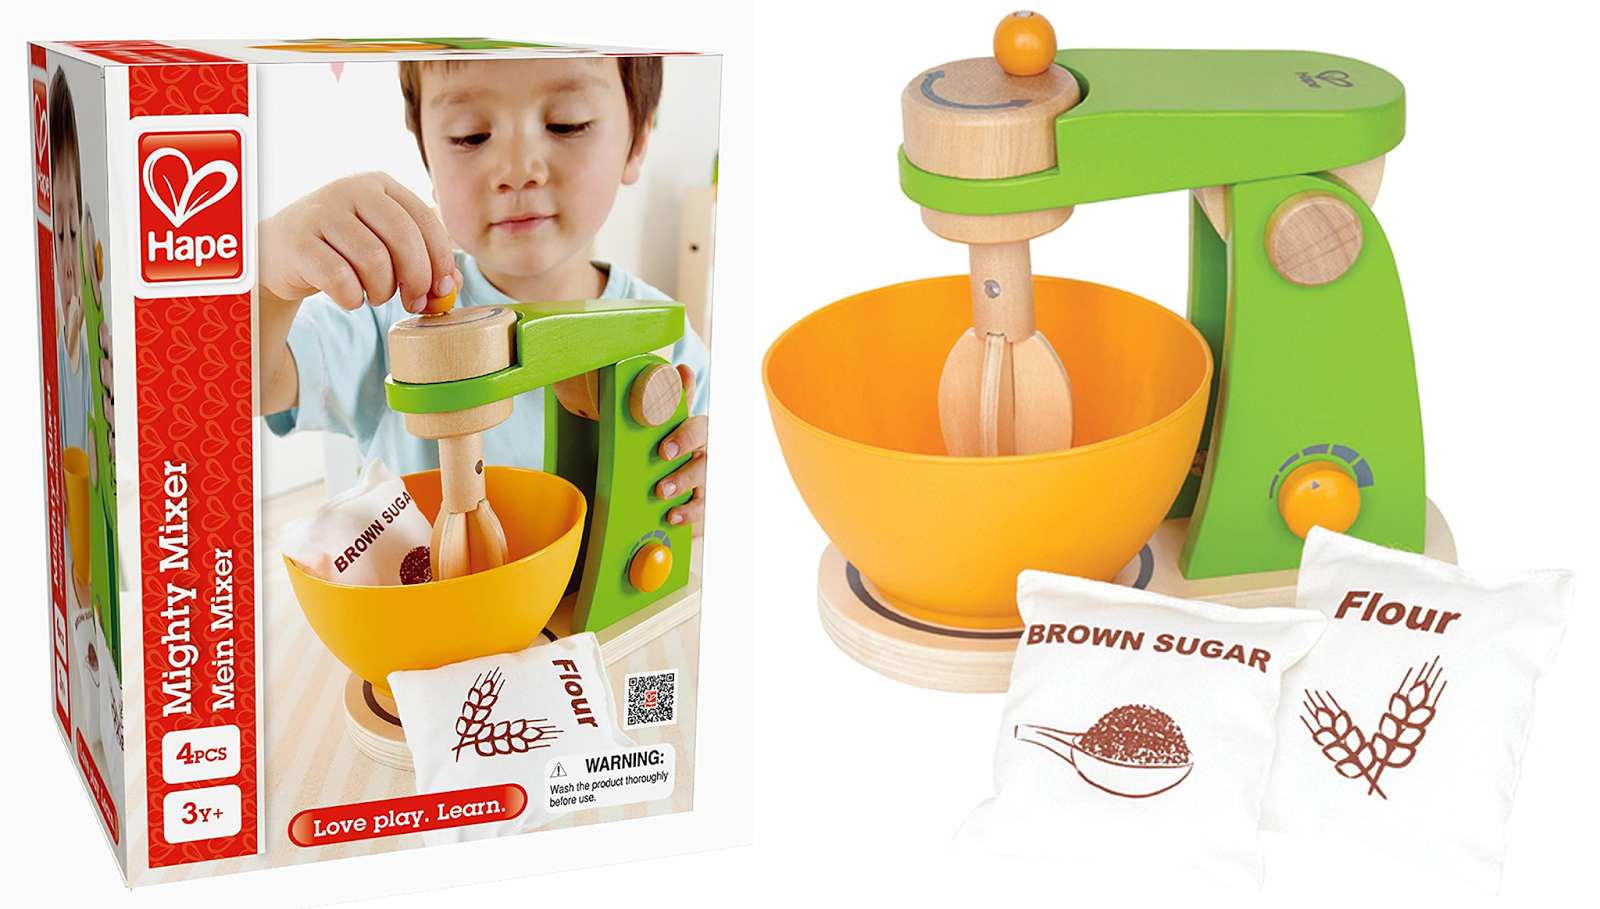 Amazon 11 89 Reg 22 48 Hape Mighty Mixer Wooden Play Kitchen